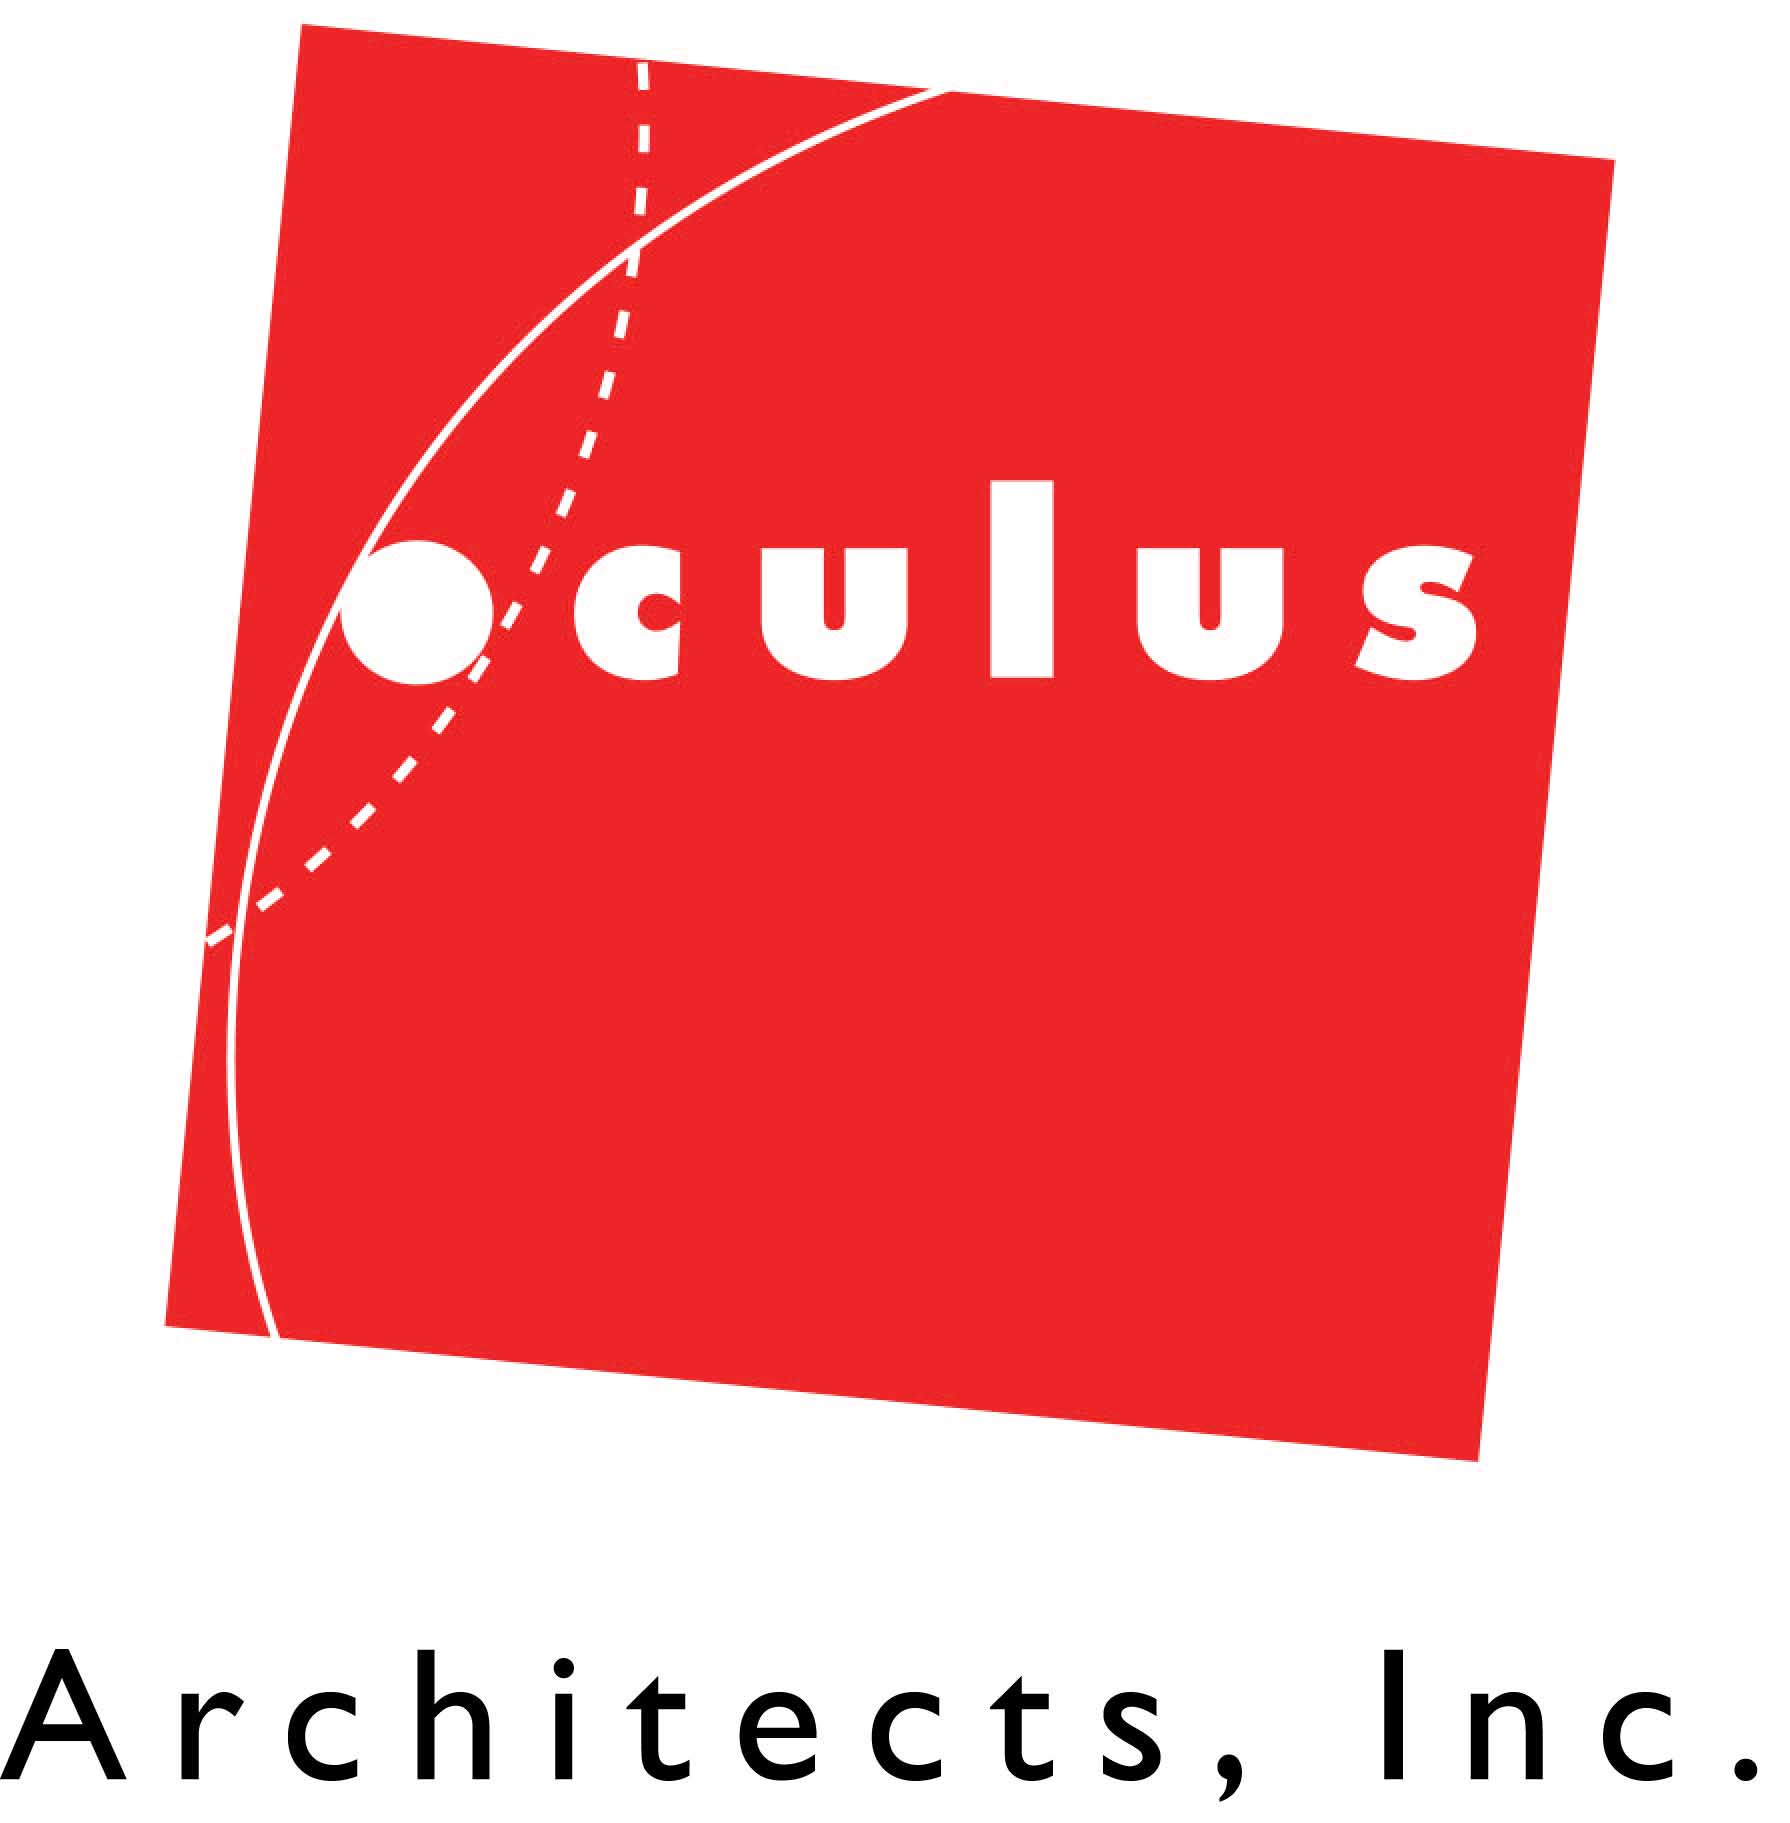 Oculus Architects Inc